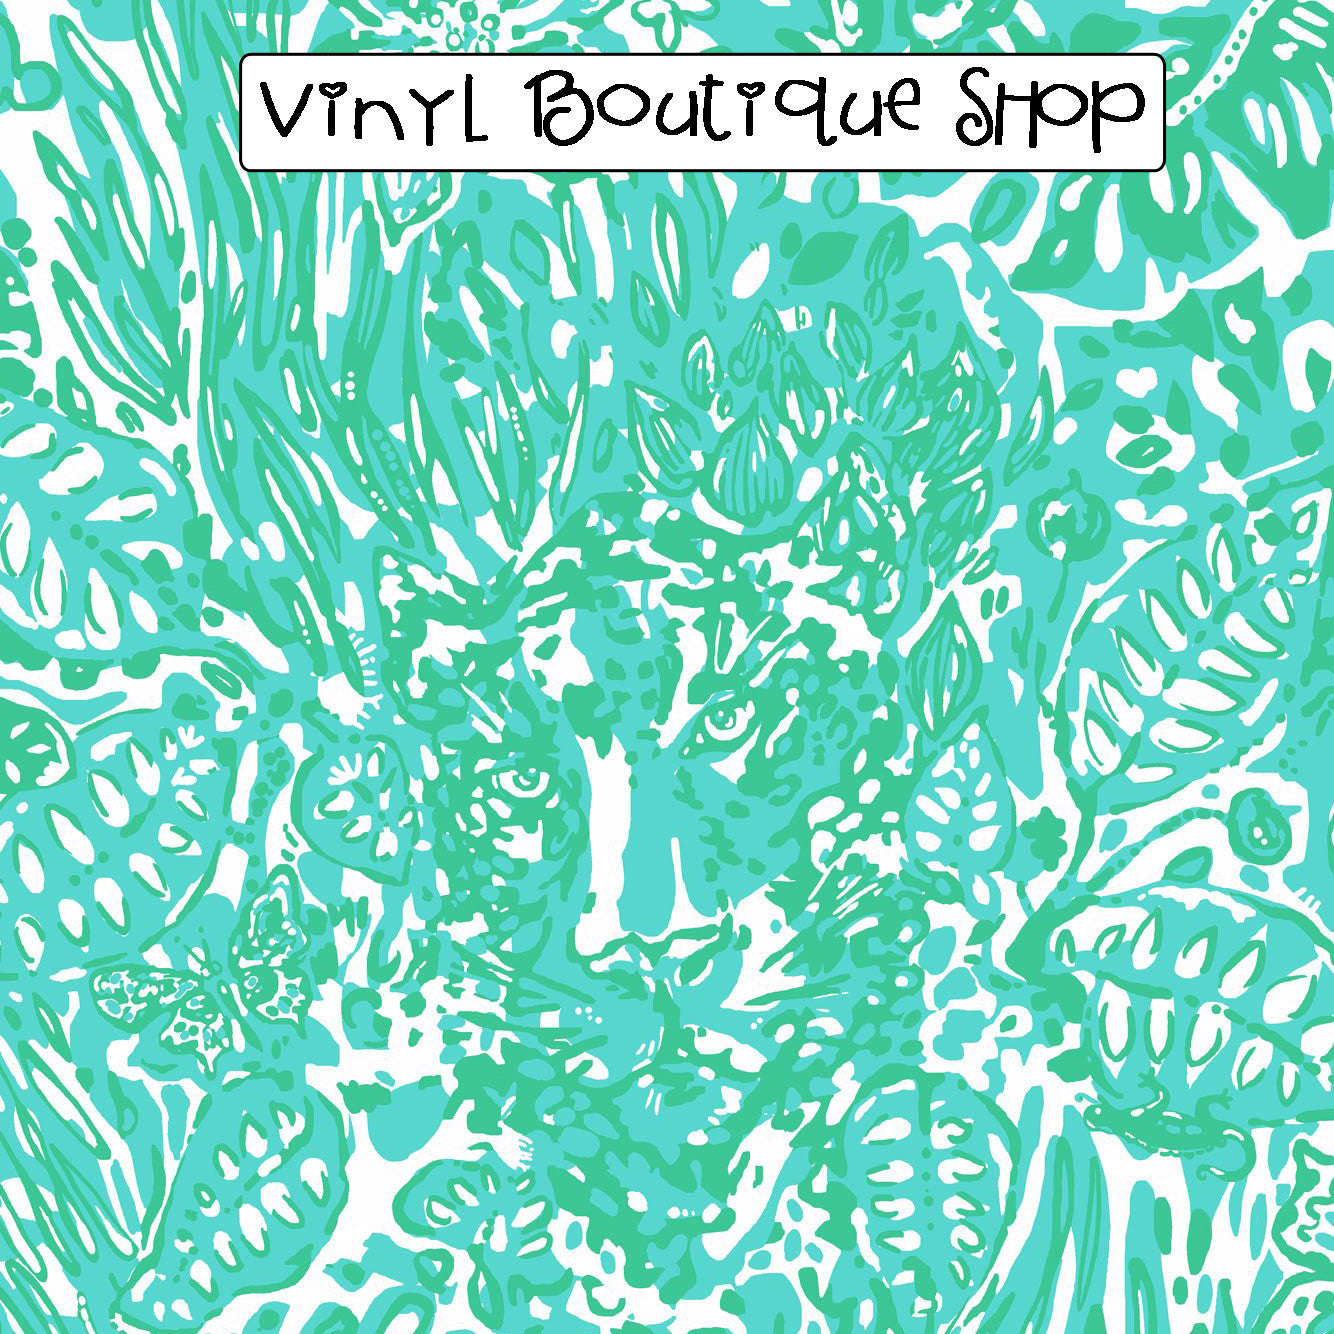 Bungle Jungle Lilly Inspired Vinyl - Vinyl Boutique Shop